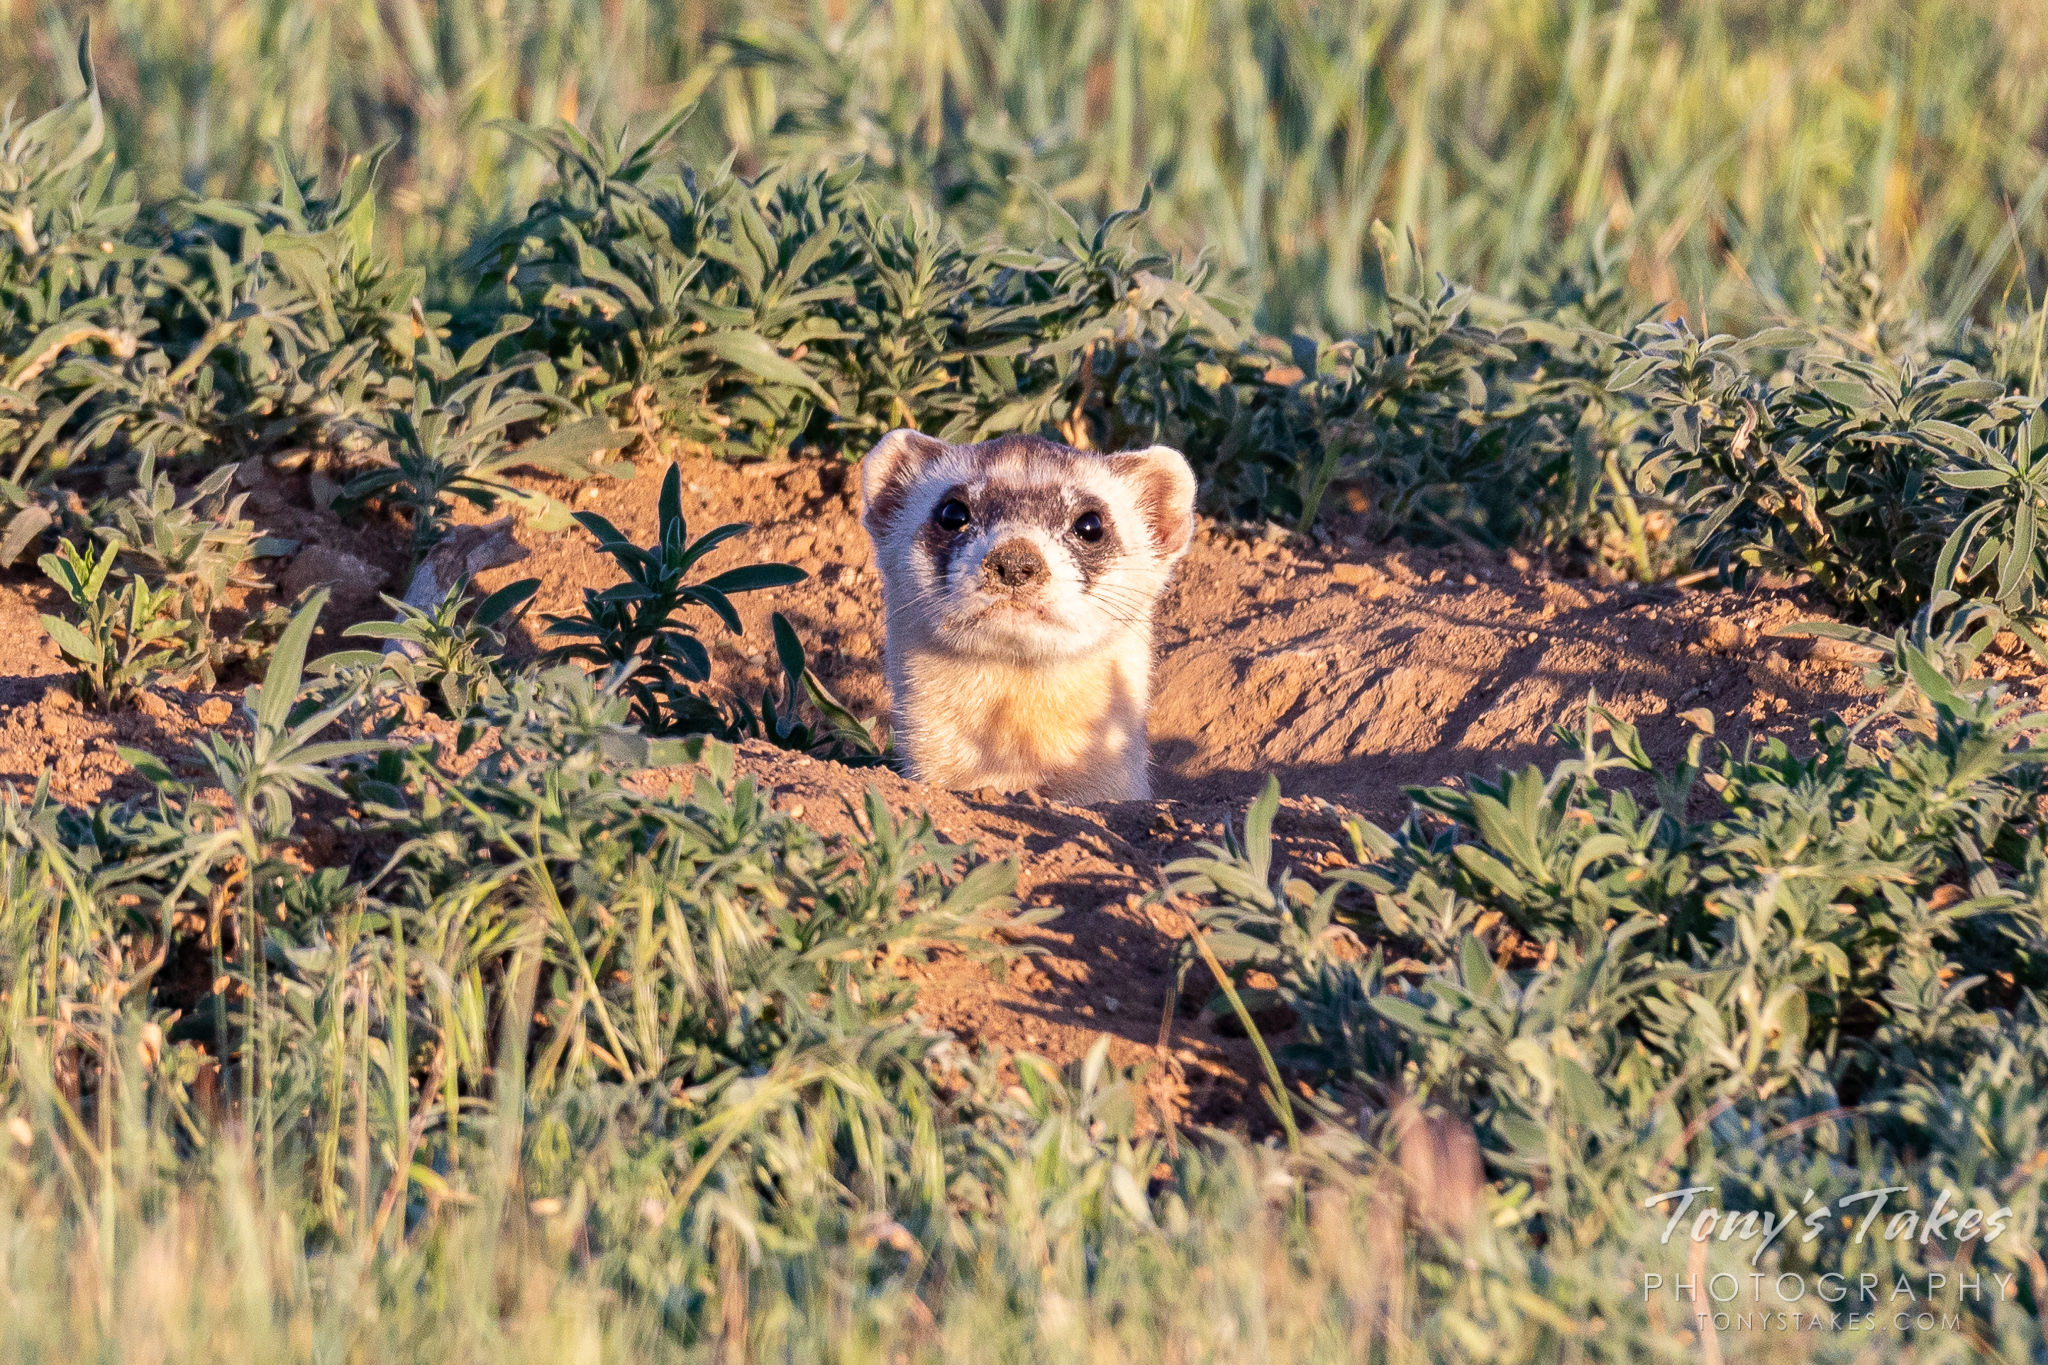 A black-footed ferret, North America's most endangered mammal, peeks up from a burrow in Colorado. (© Tony's Takes)